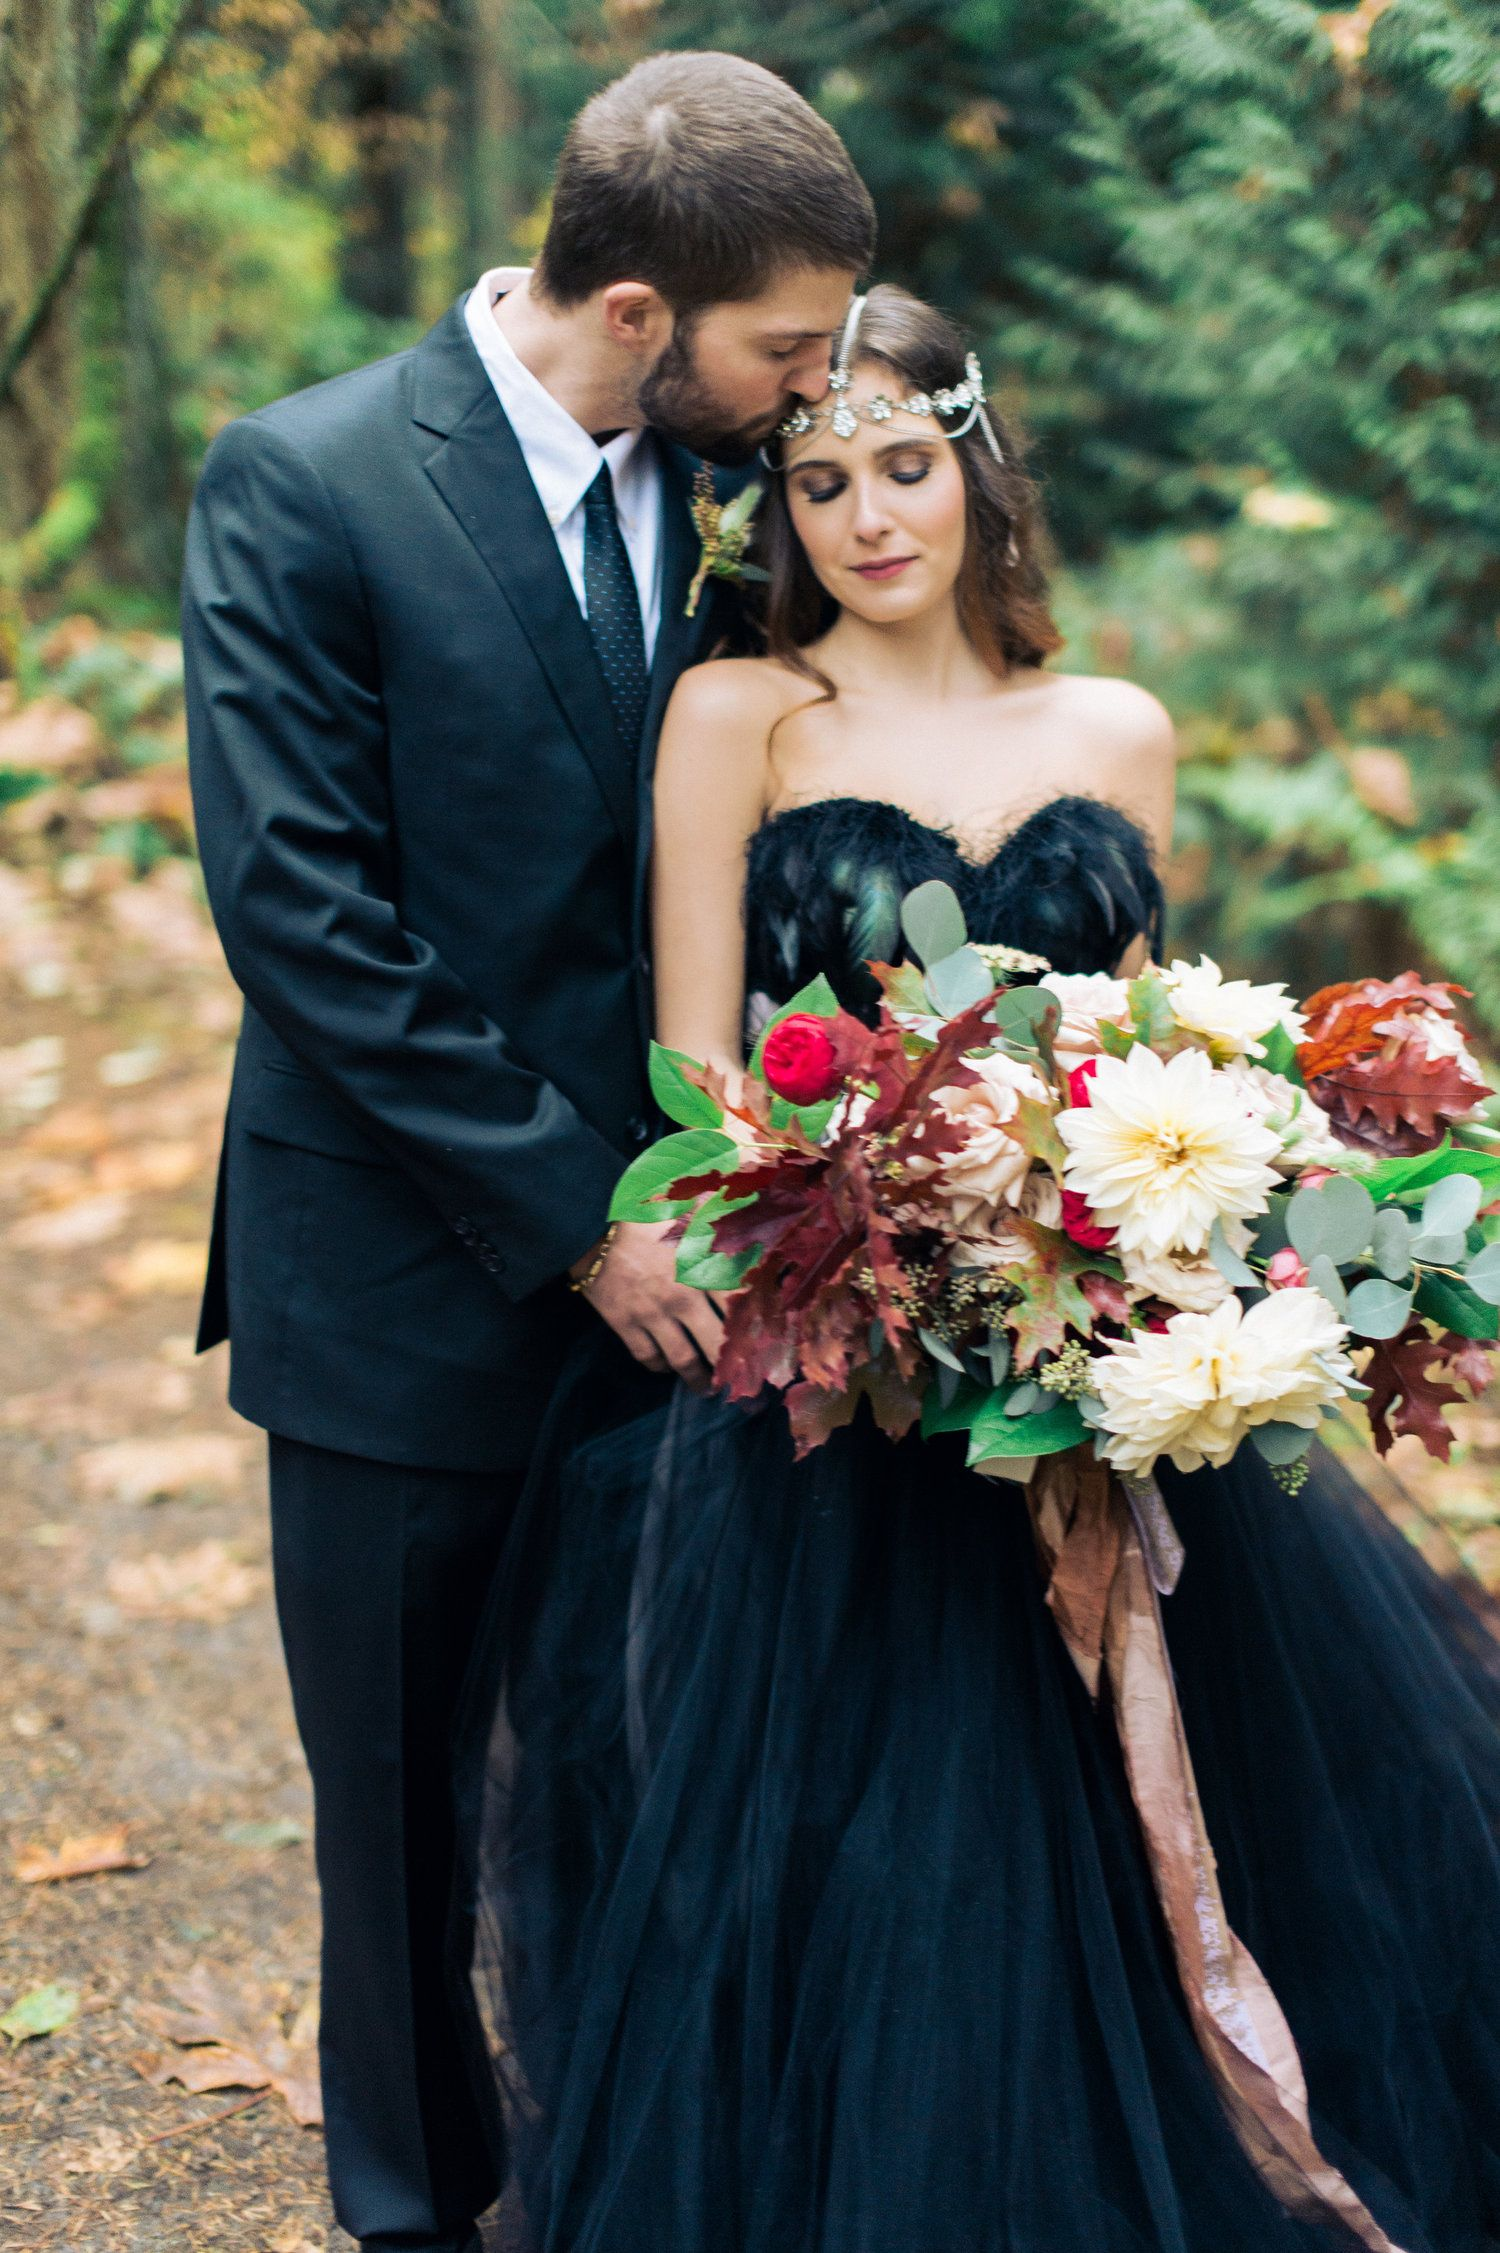 Black Wedding Dress by Clare La Faye. Photo: CJK visuals. Flowers ...